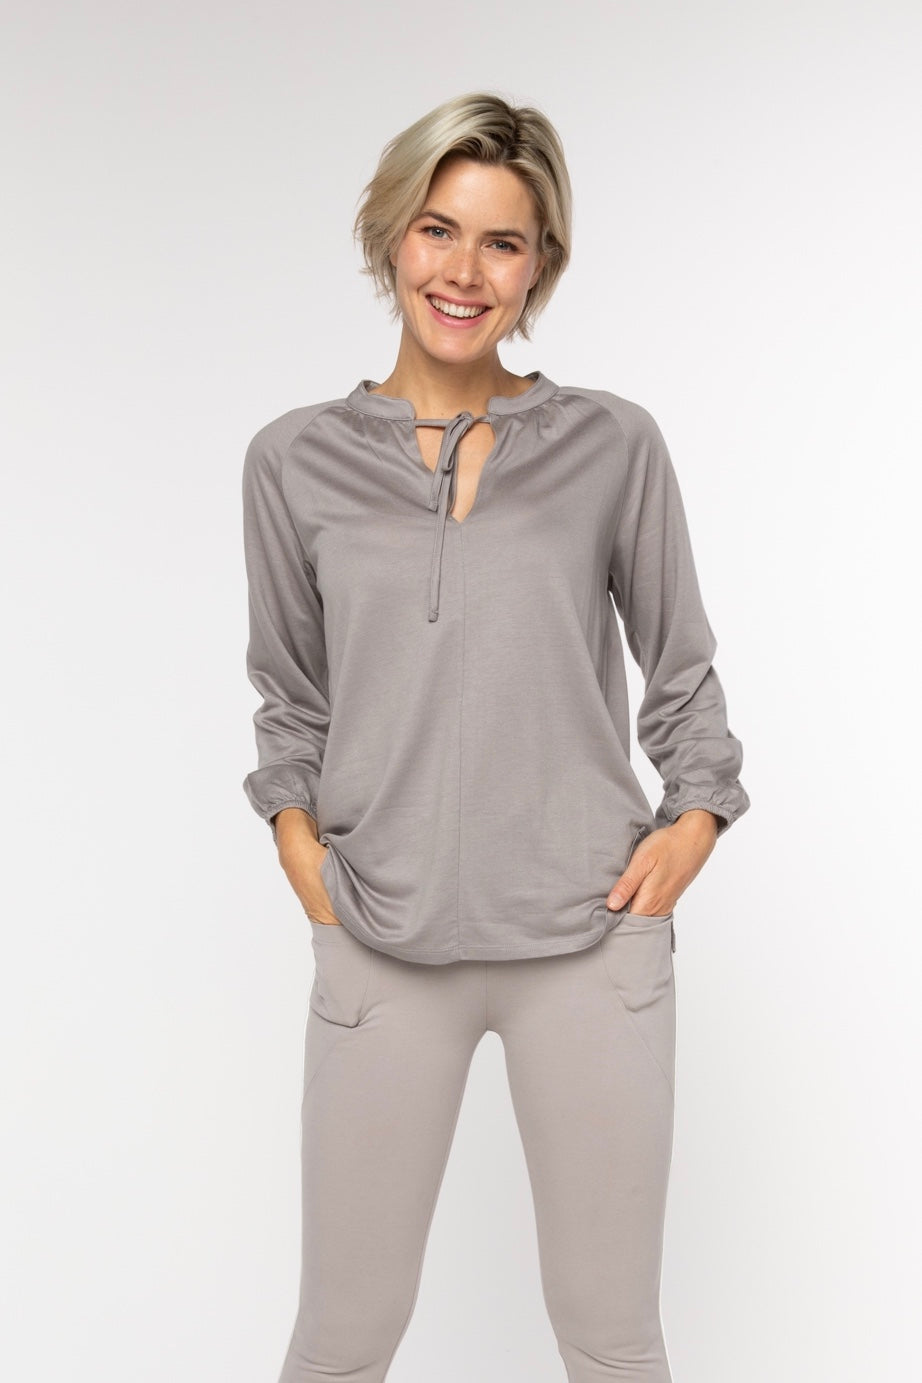 BRZ BUS 38 Blouse - Taupe